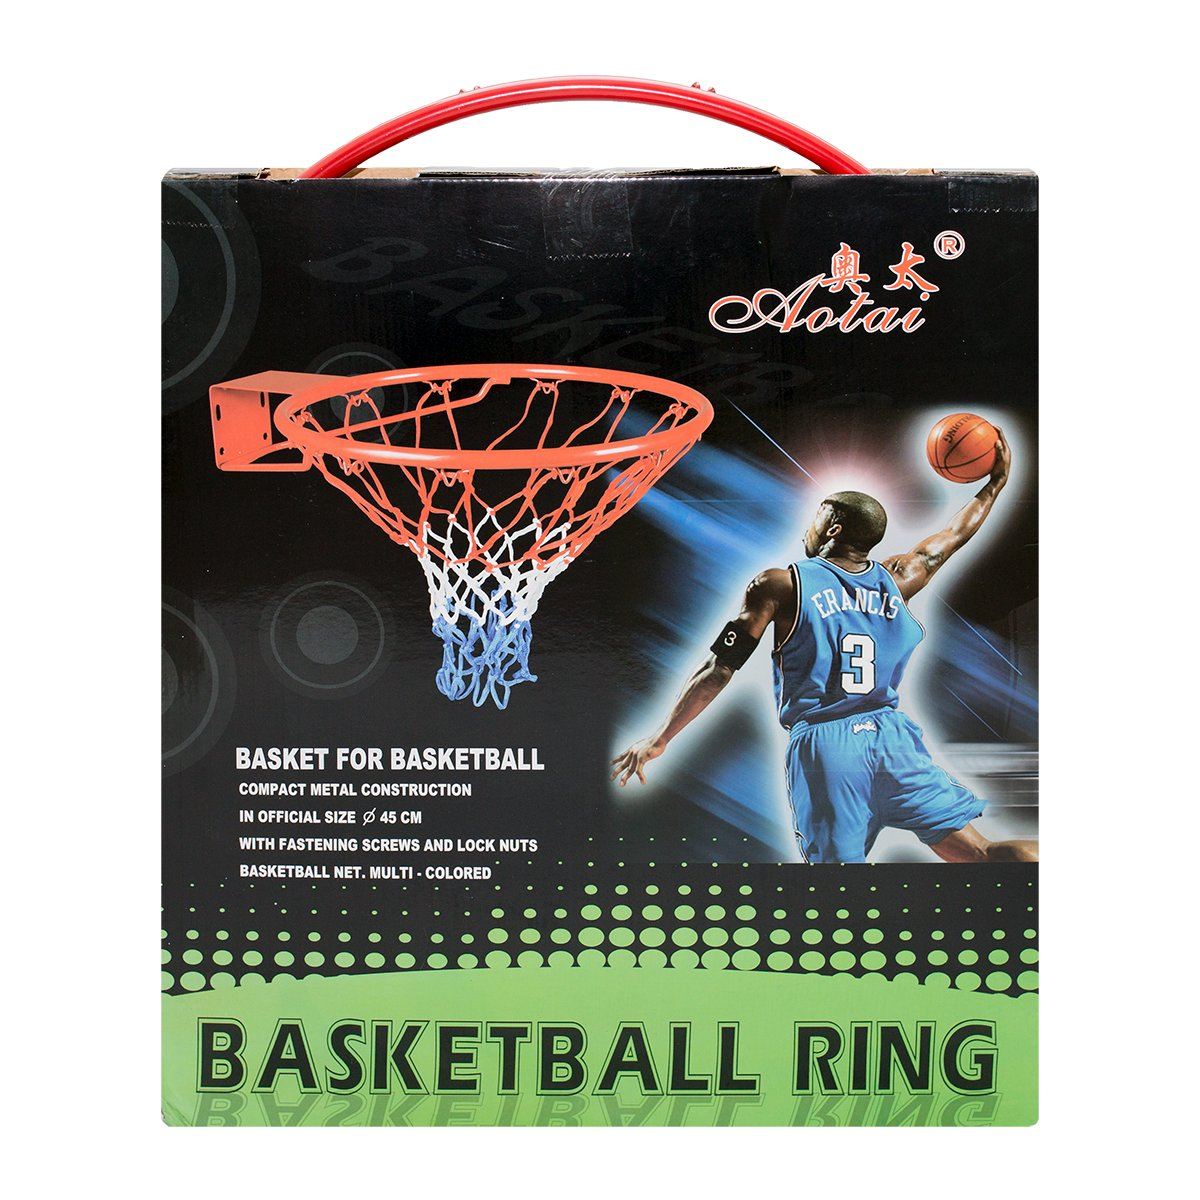 18'' Professional Basketball Hoop Ring with Net for Wall Mounted Outdoor Hanging by viper s traders